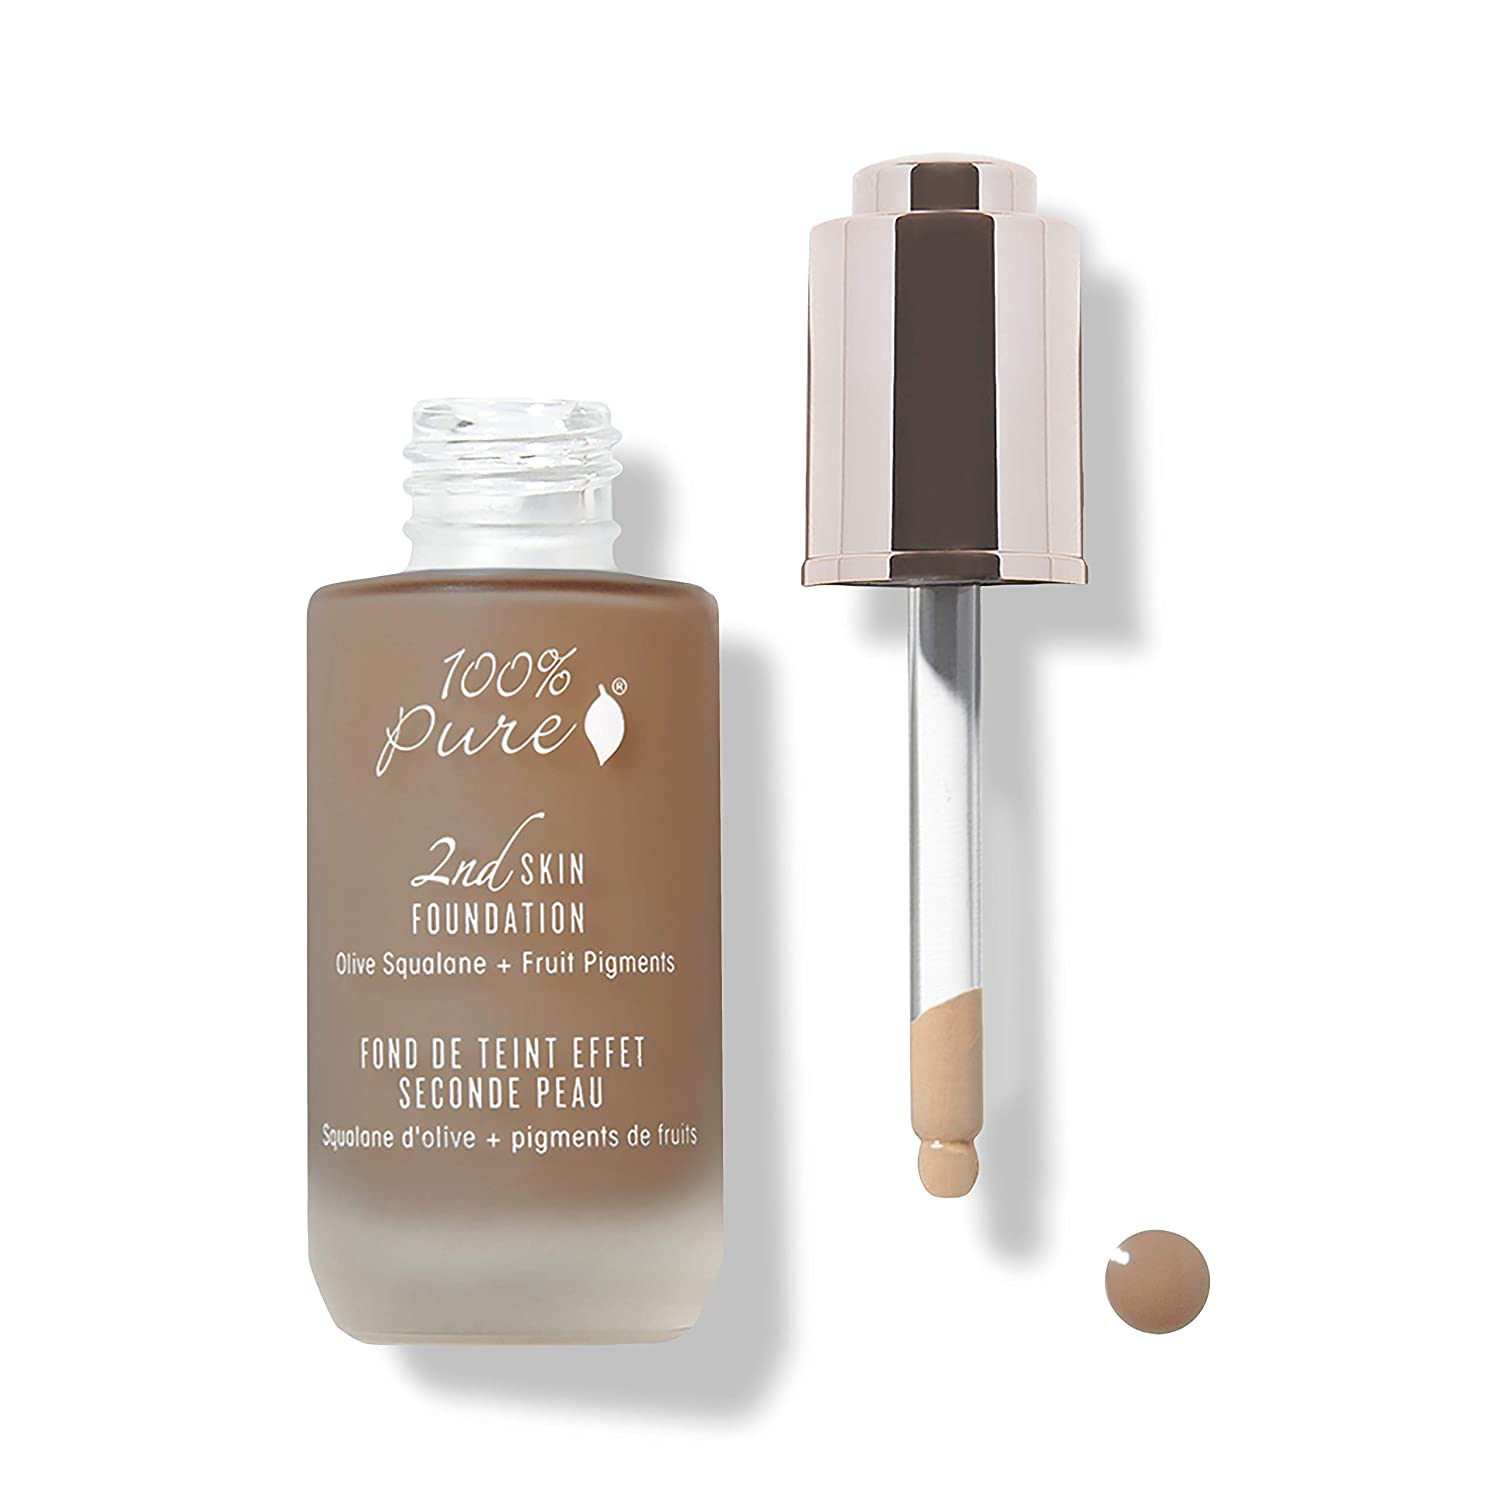 100% PURE 2nd Skin Foundation, Shade 7, Full Coverage, Lightweight, Blendable Formula, Satin Finish, Absorbs Oil, Anti-Aging, Natural, Vegan Makeup (Neutral w/Red Undertone) - 1.18 Fl Oz